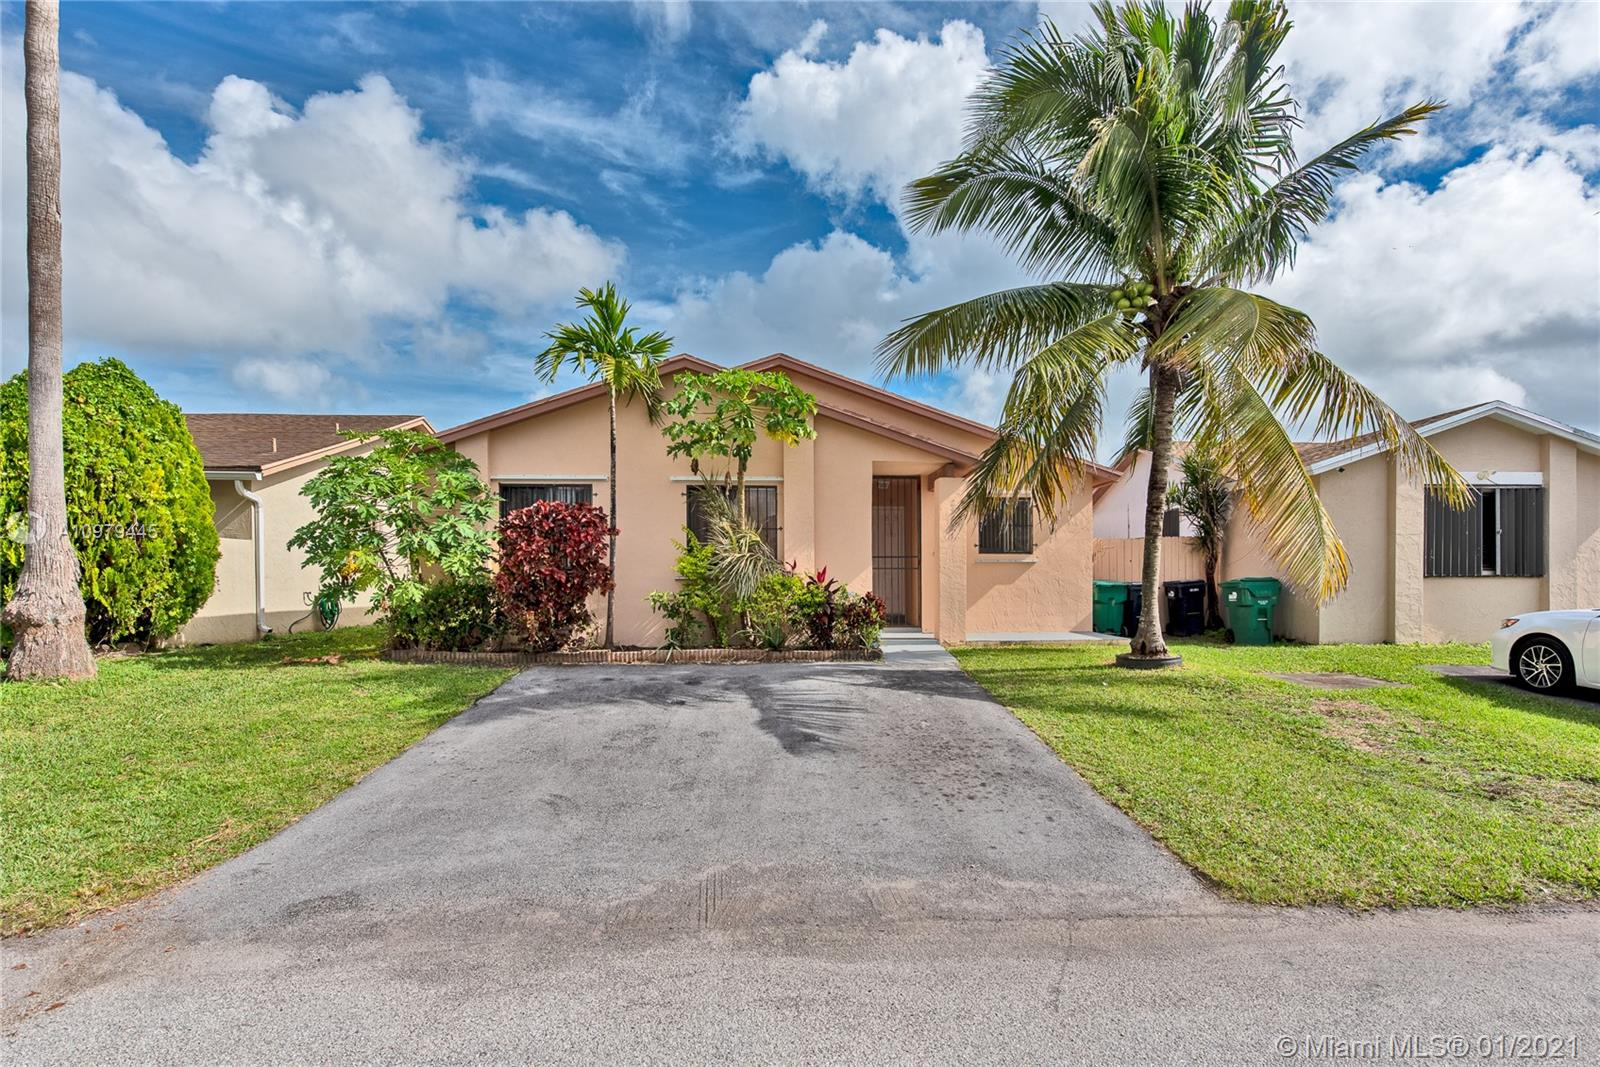 25121 SW 125th Ct Property Photo - Homestead, FL real estate listing